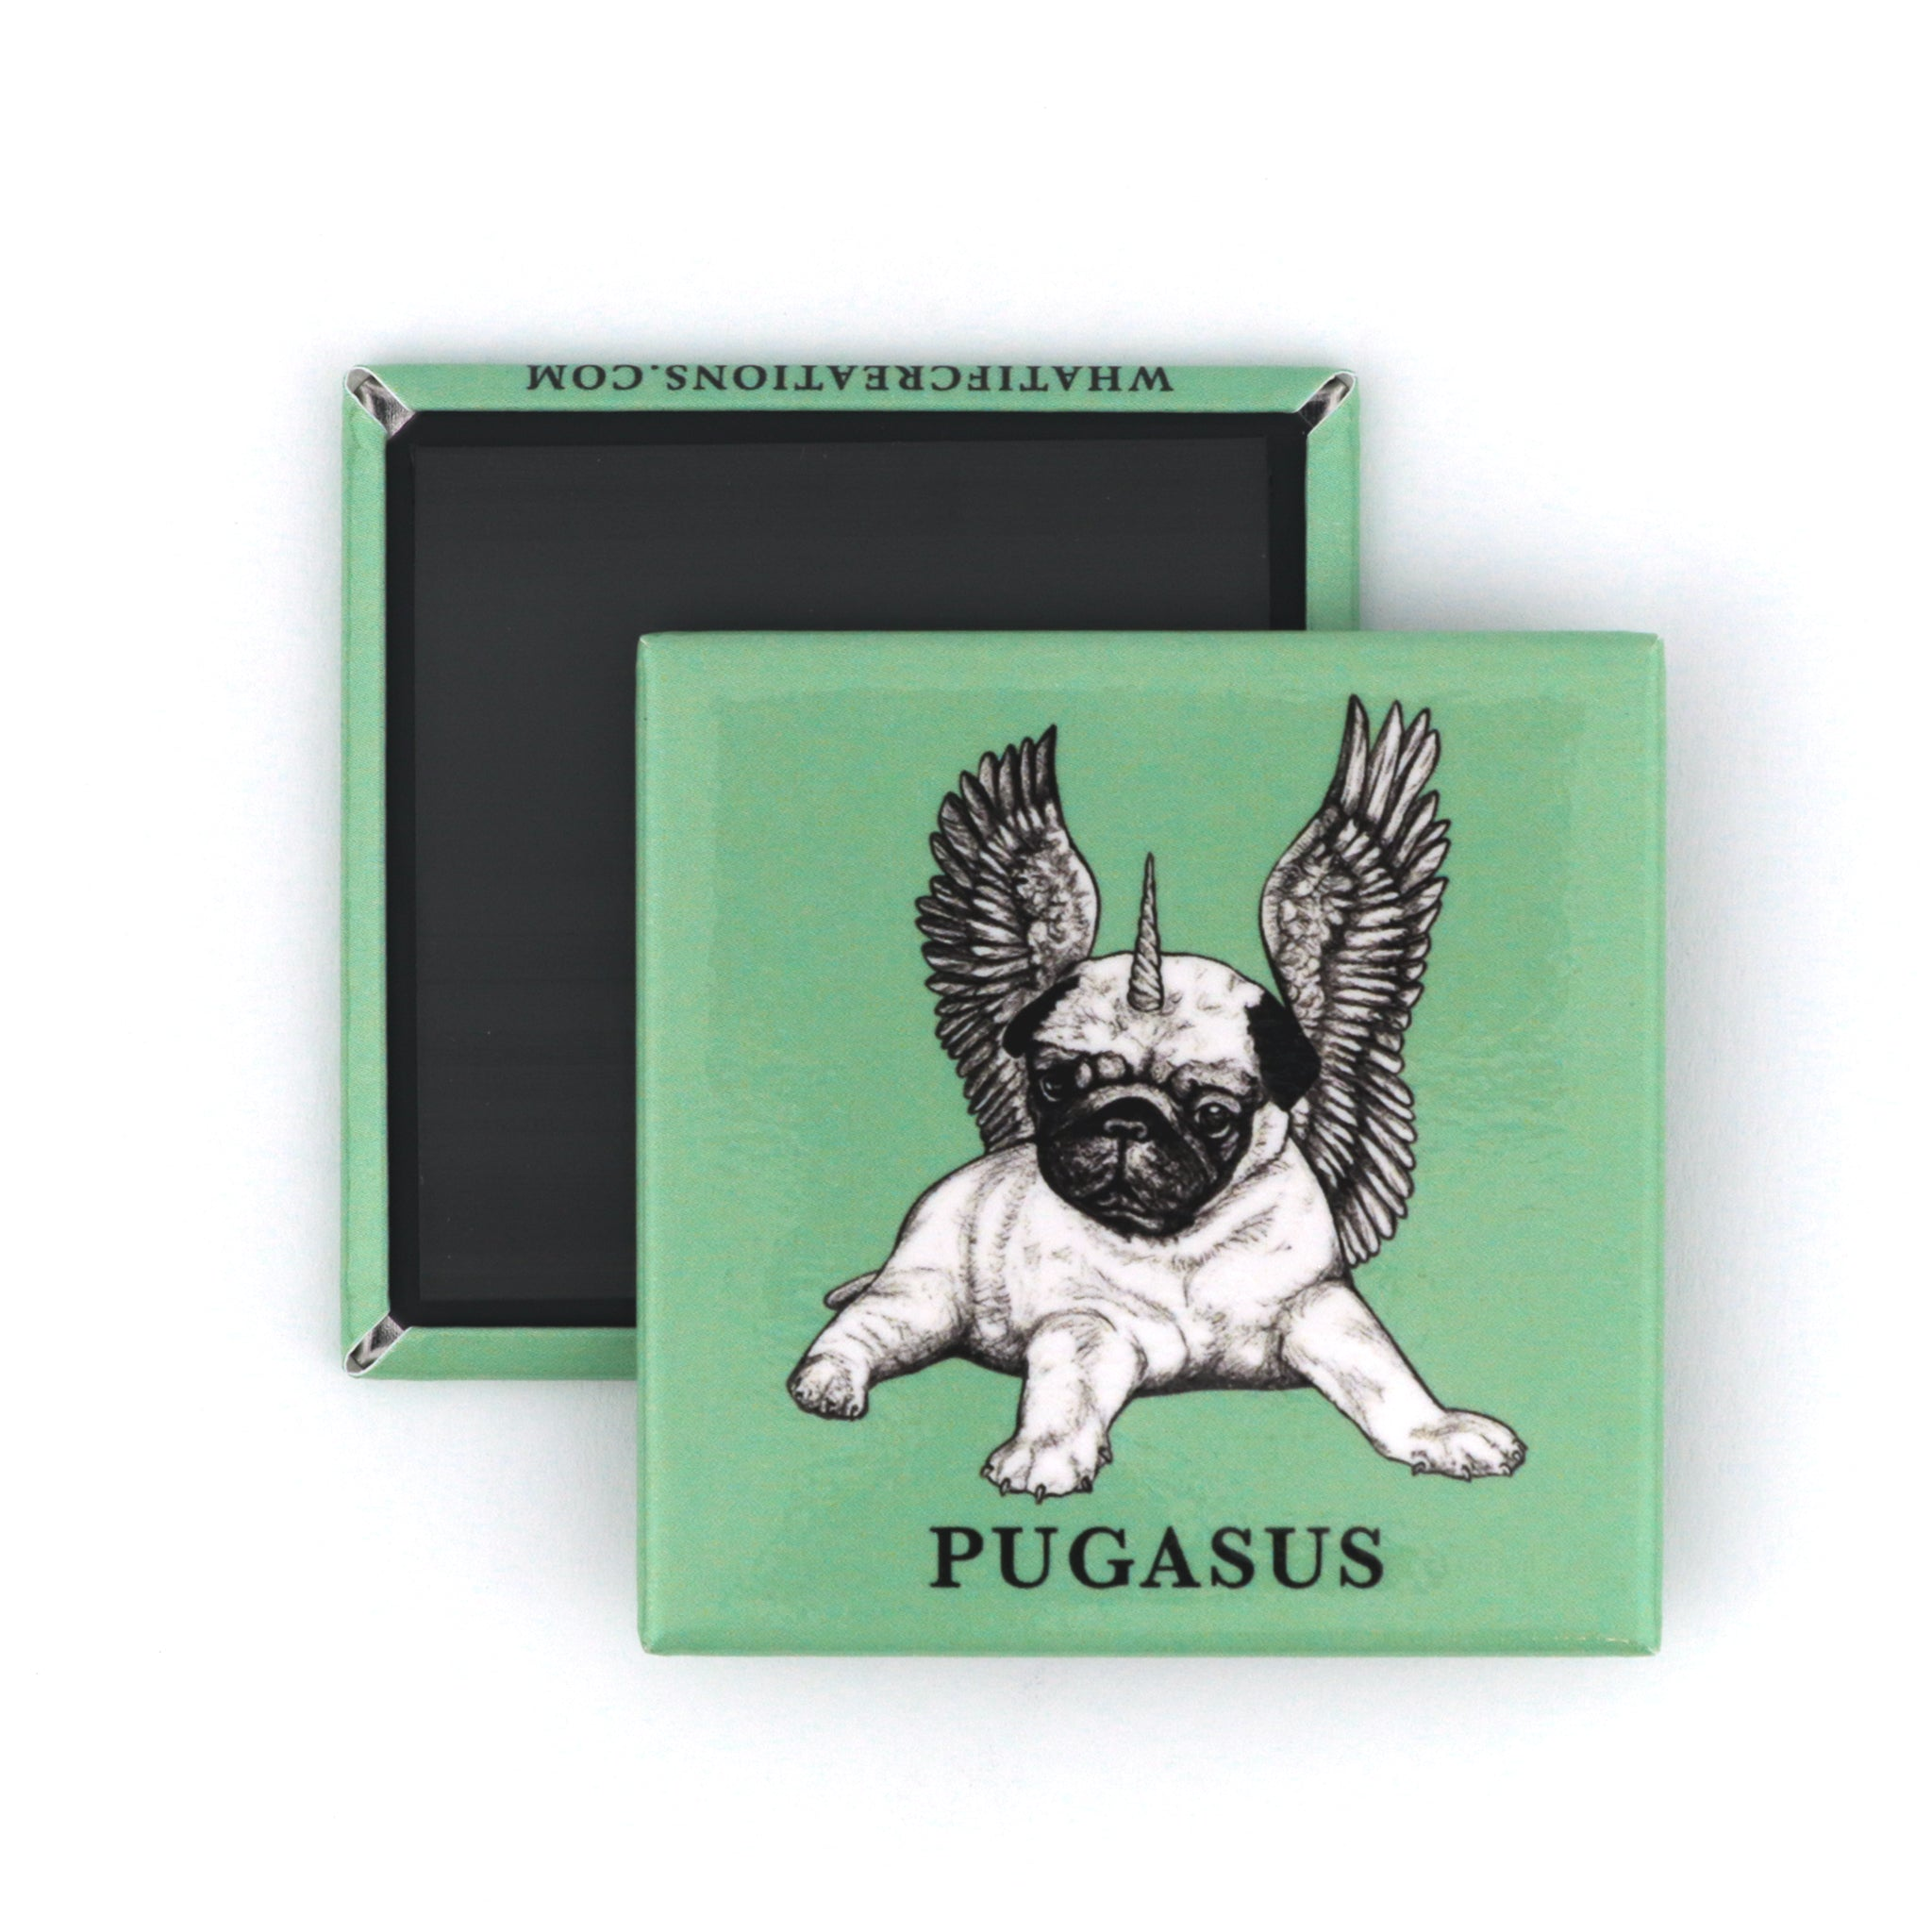 "Pugasus 2"" Fridge Magnet"